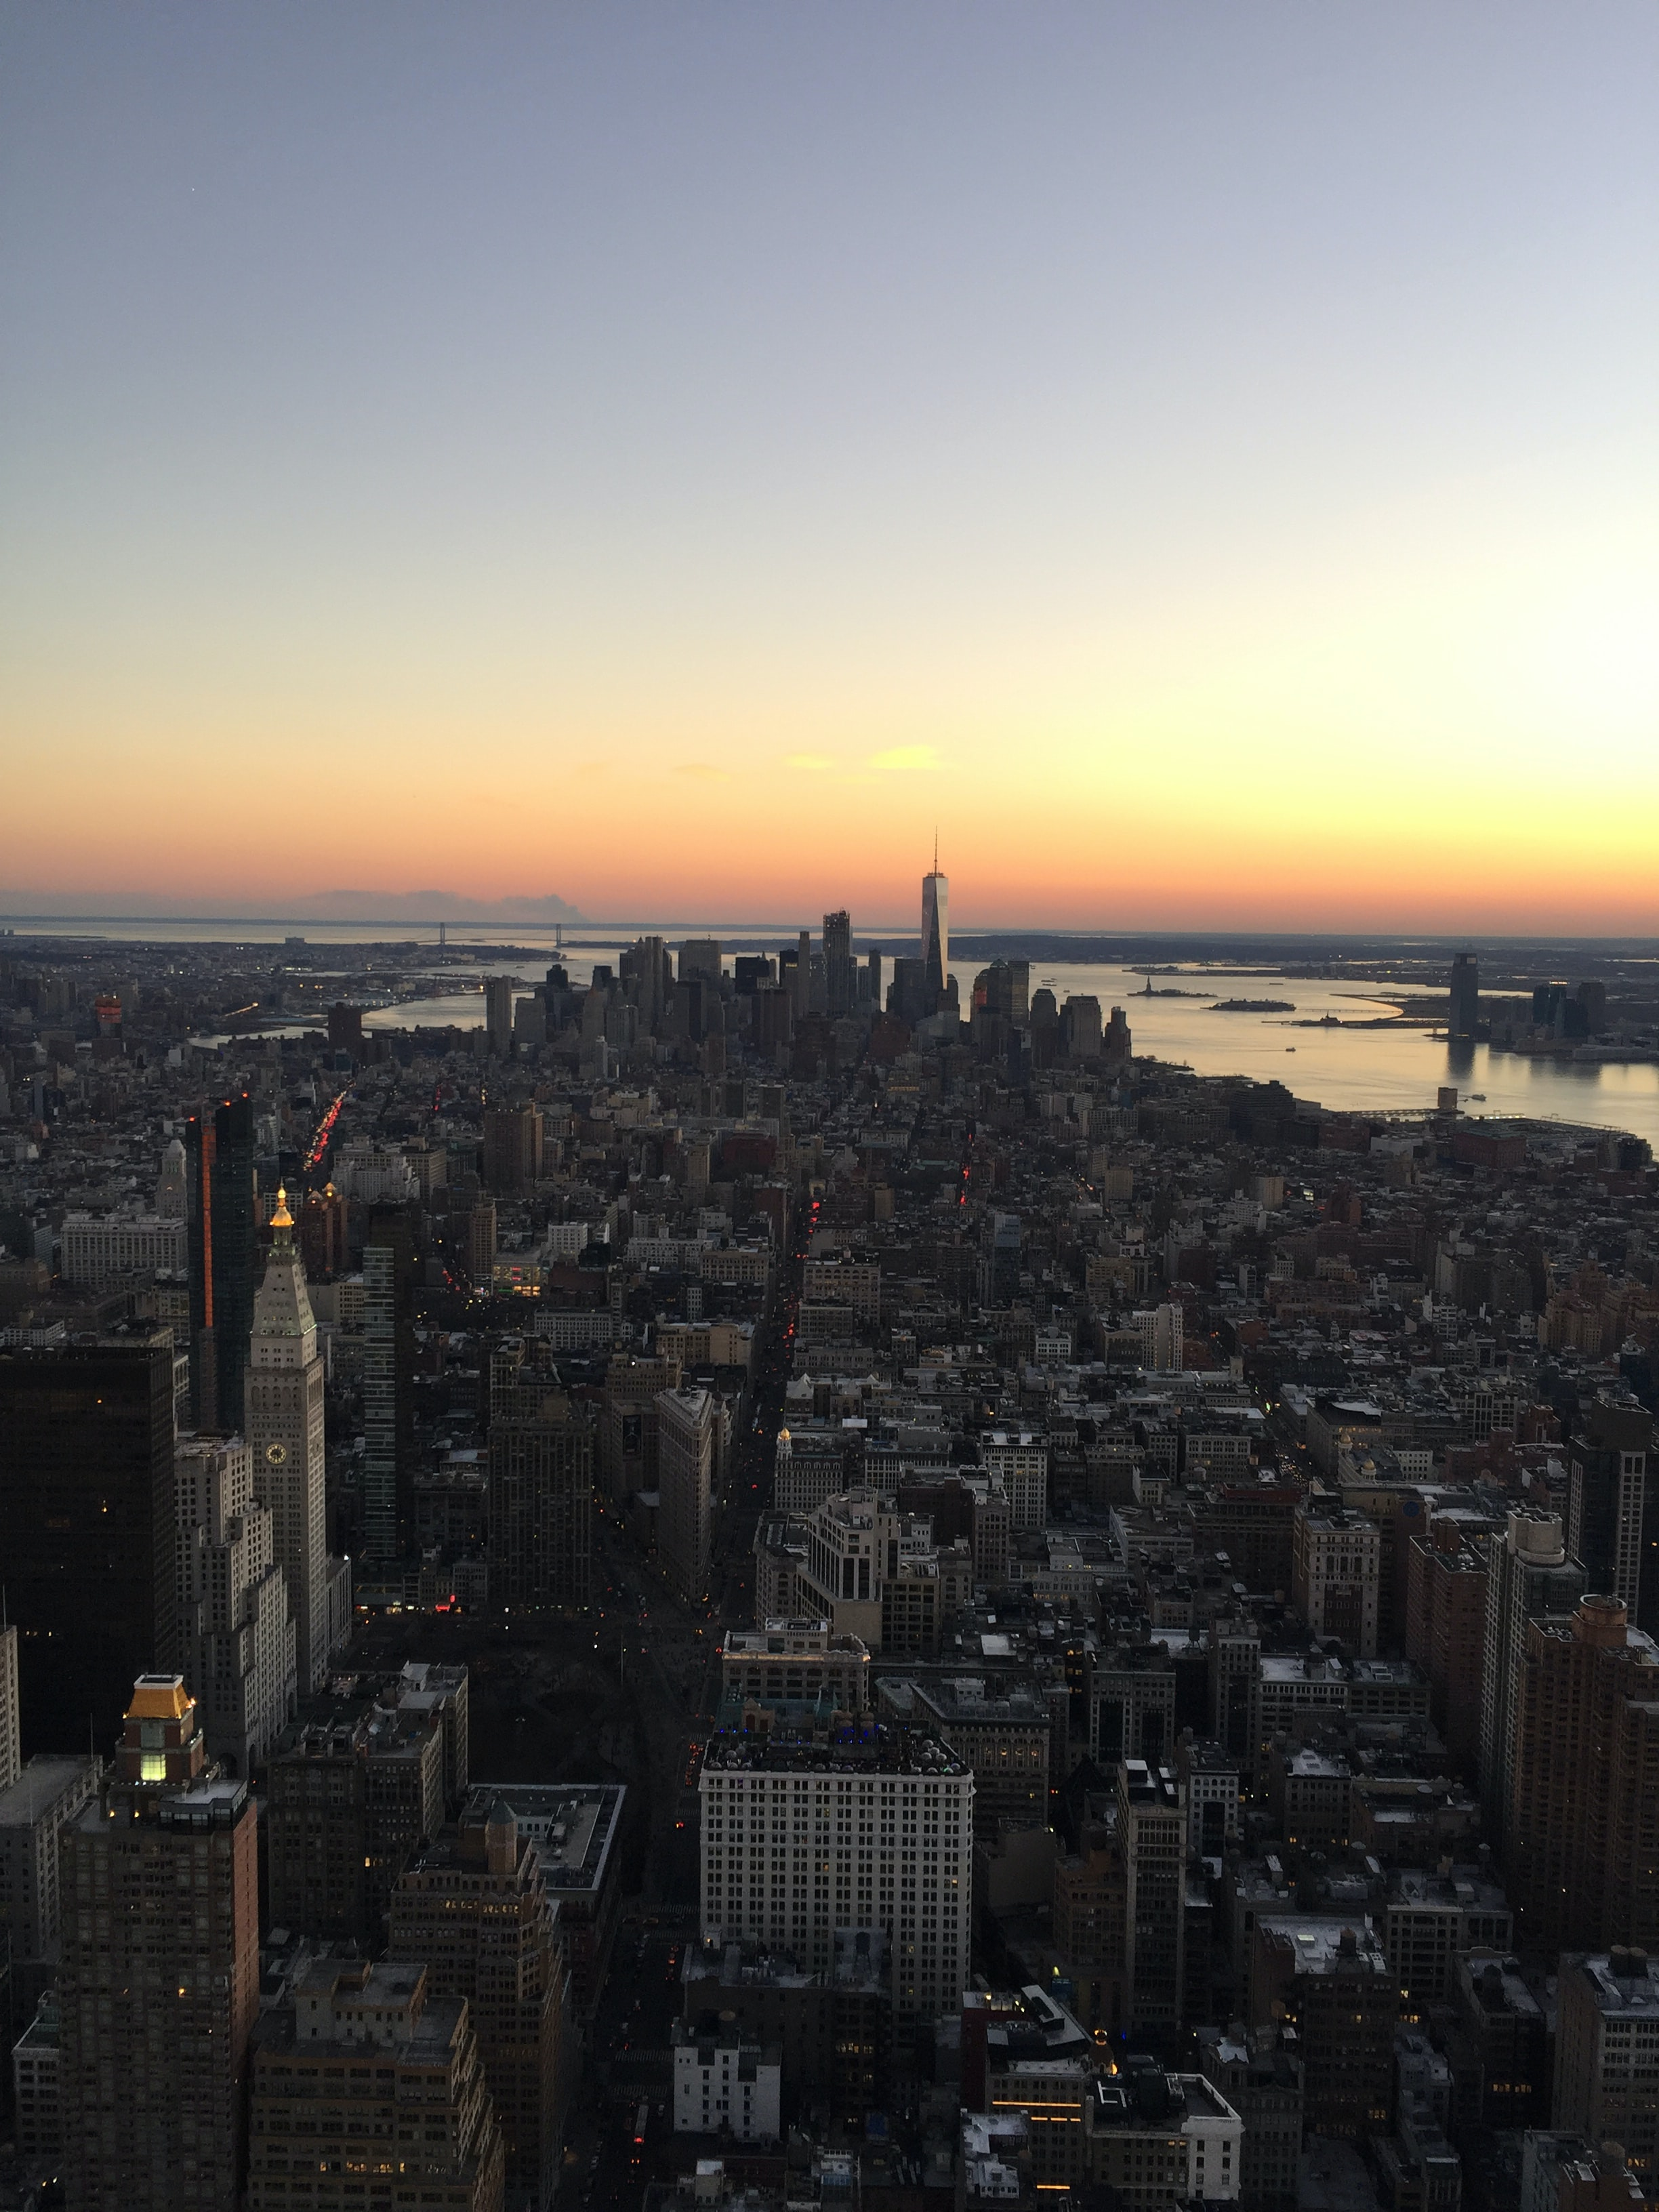 Cityscape of New York during sunset